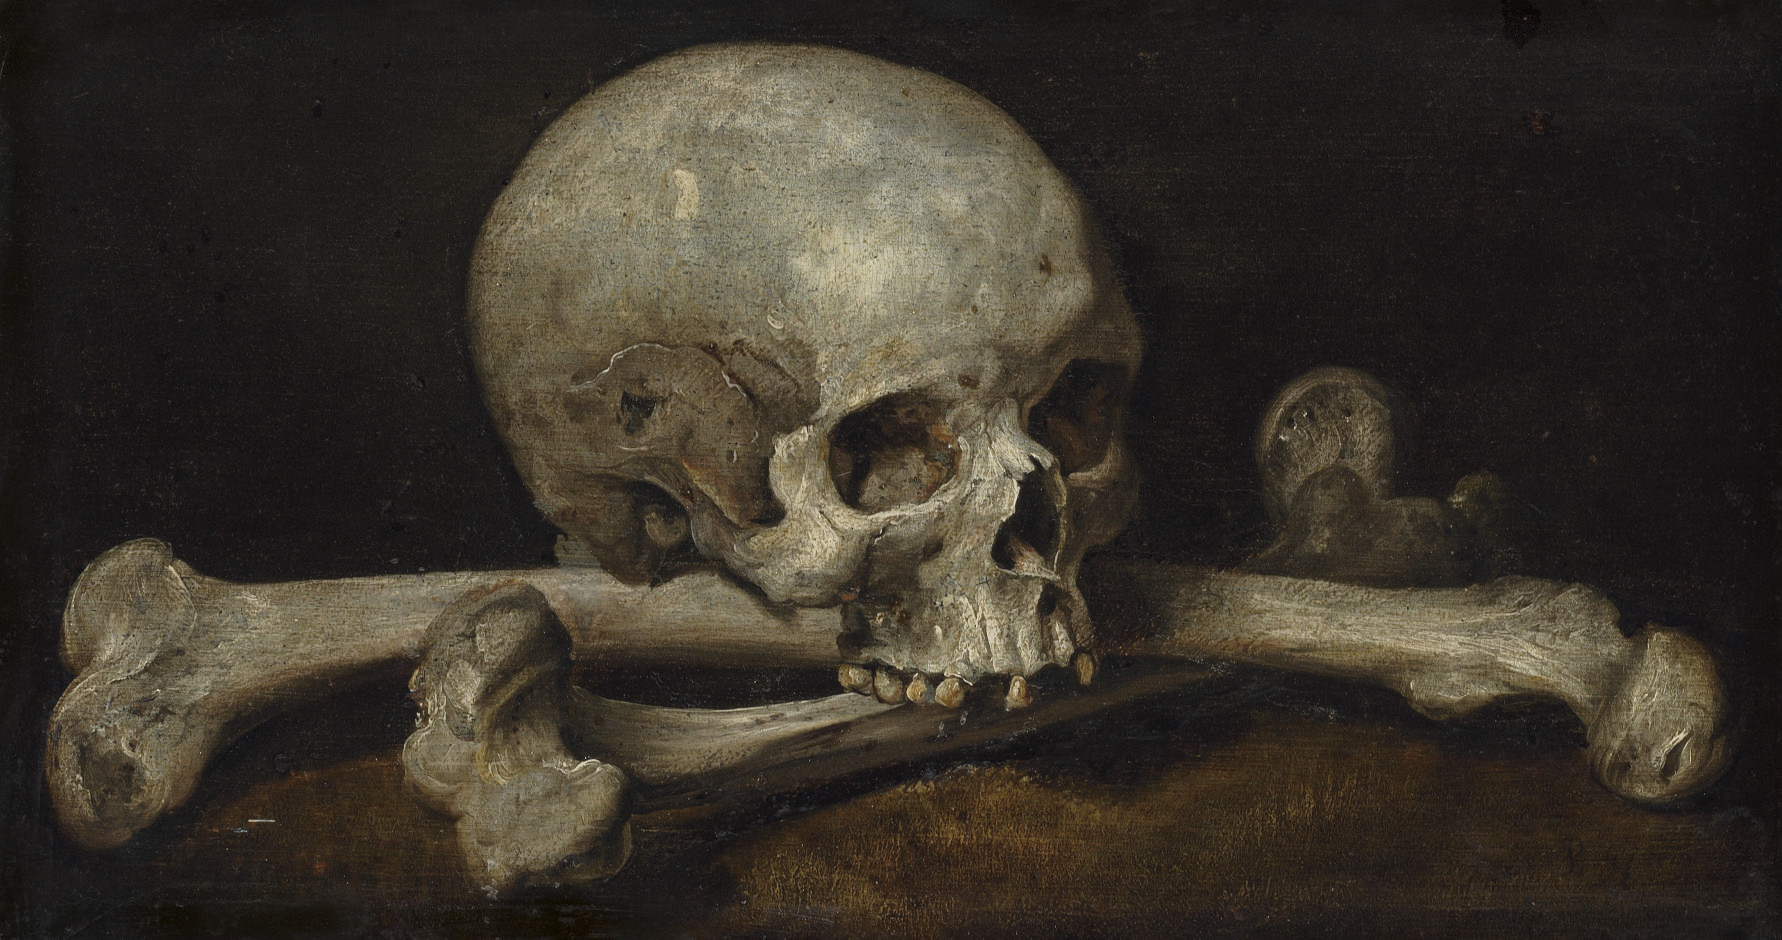 A Memento Mori with a skull and crossbones